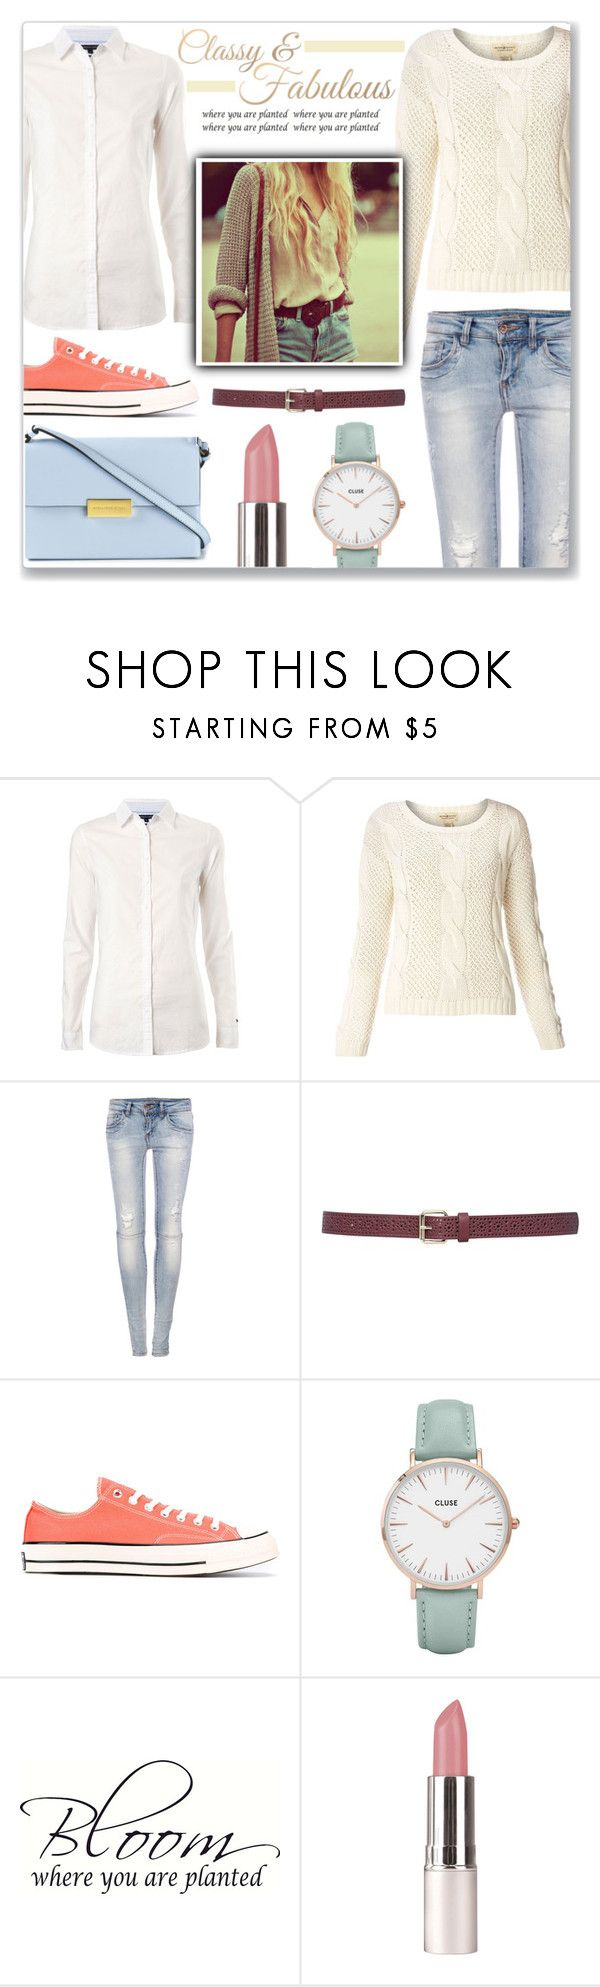 """""""OOTD - Outfit Of The Day #My Style"""" by asiyaoves ❤ liked on Polyvore featuring Tommy Hilfiger, Denim & Supply by Ralph Lauren, Pull&Bear, M&Co, Converse, CLUSE and STELLA McCARTNEY"""